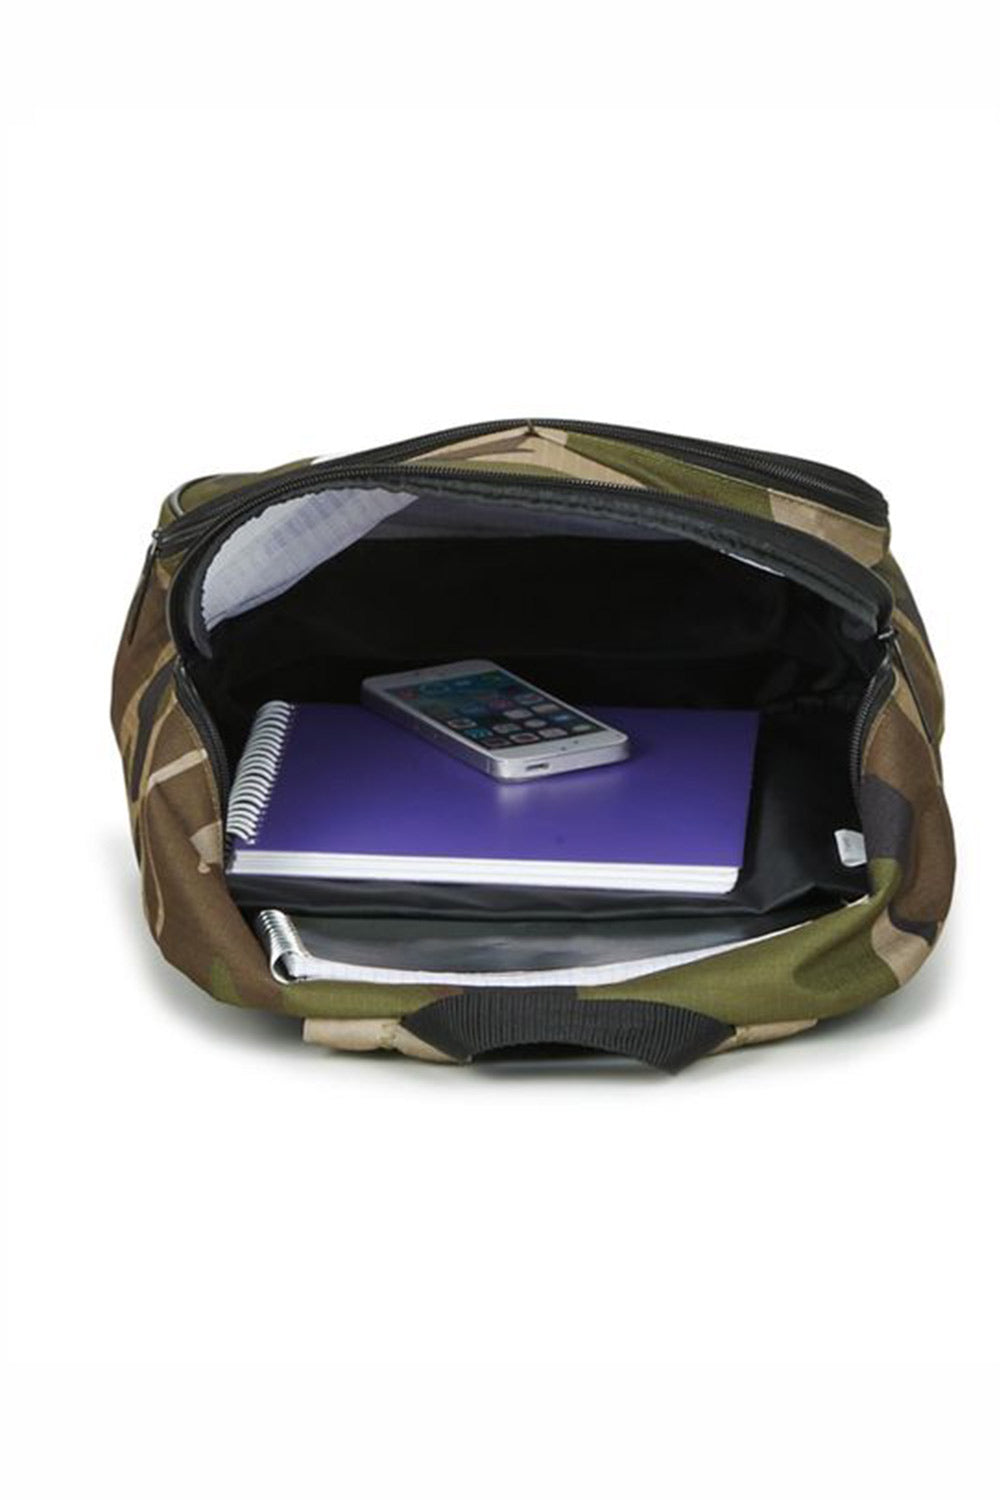 Adidas BP Classic Backpack - Camo